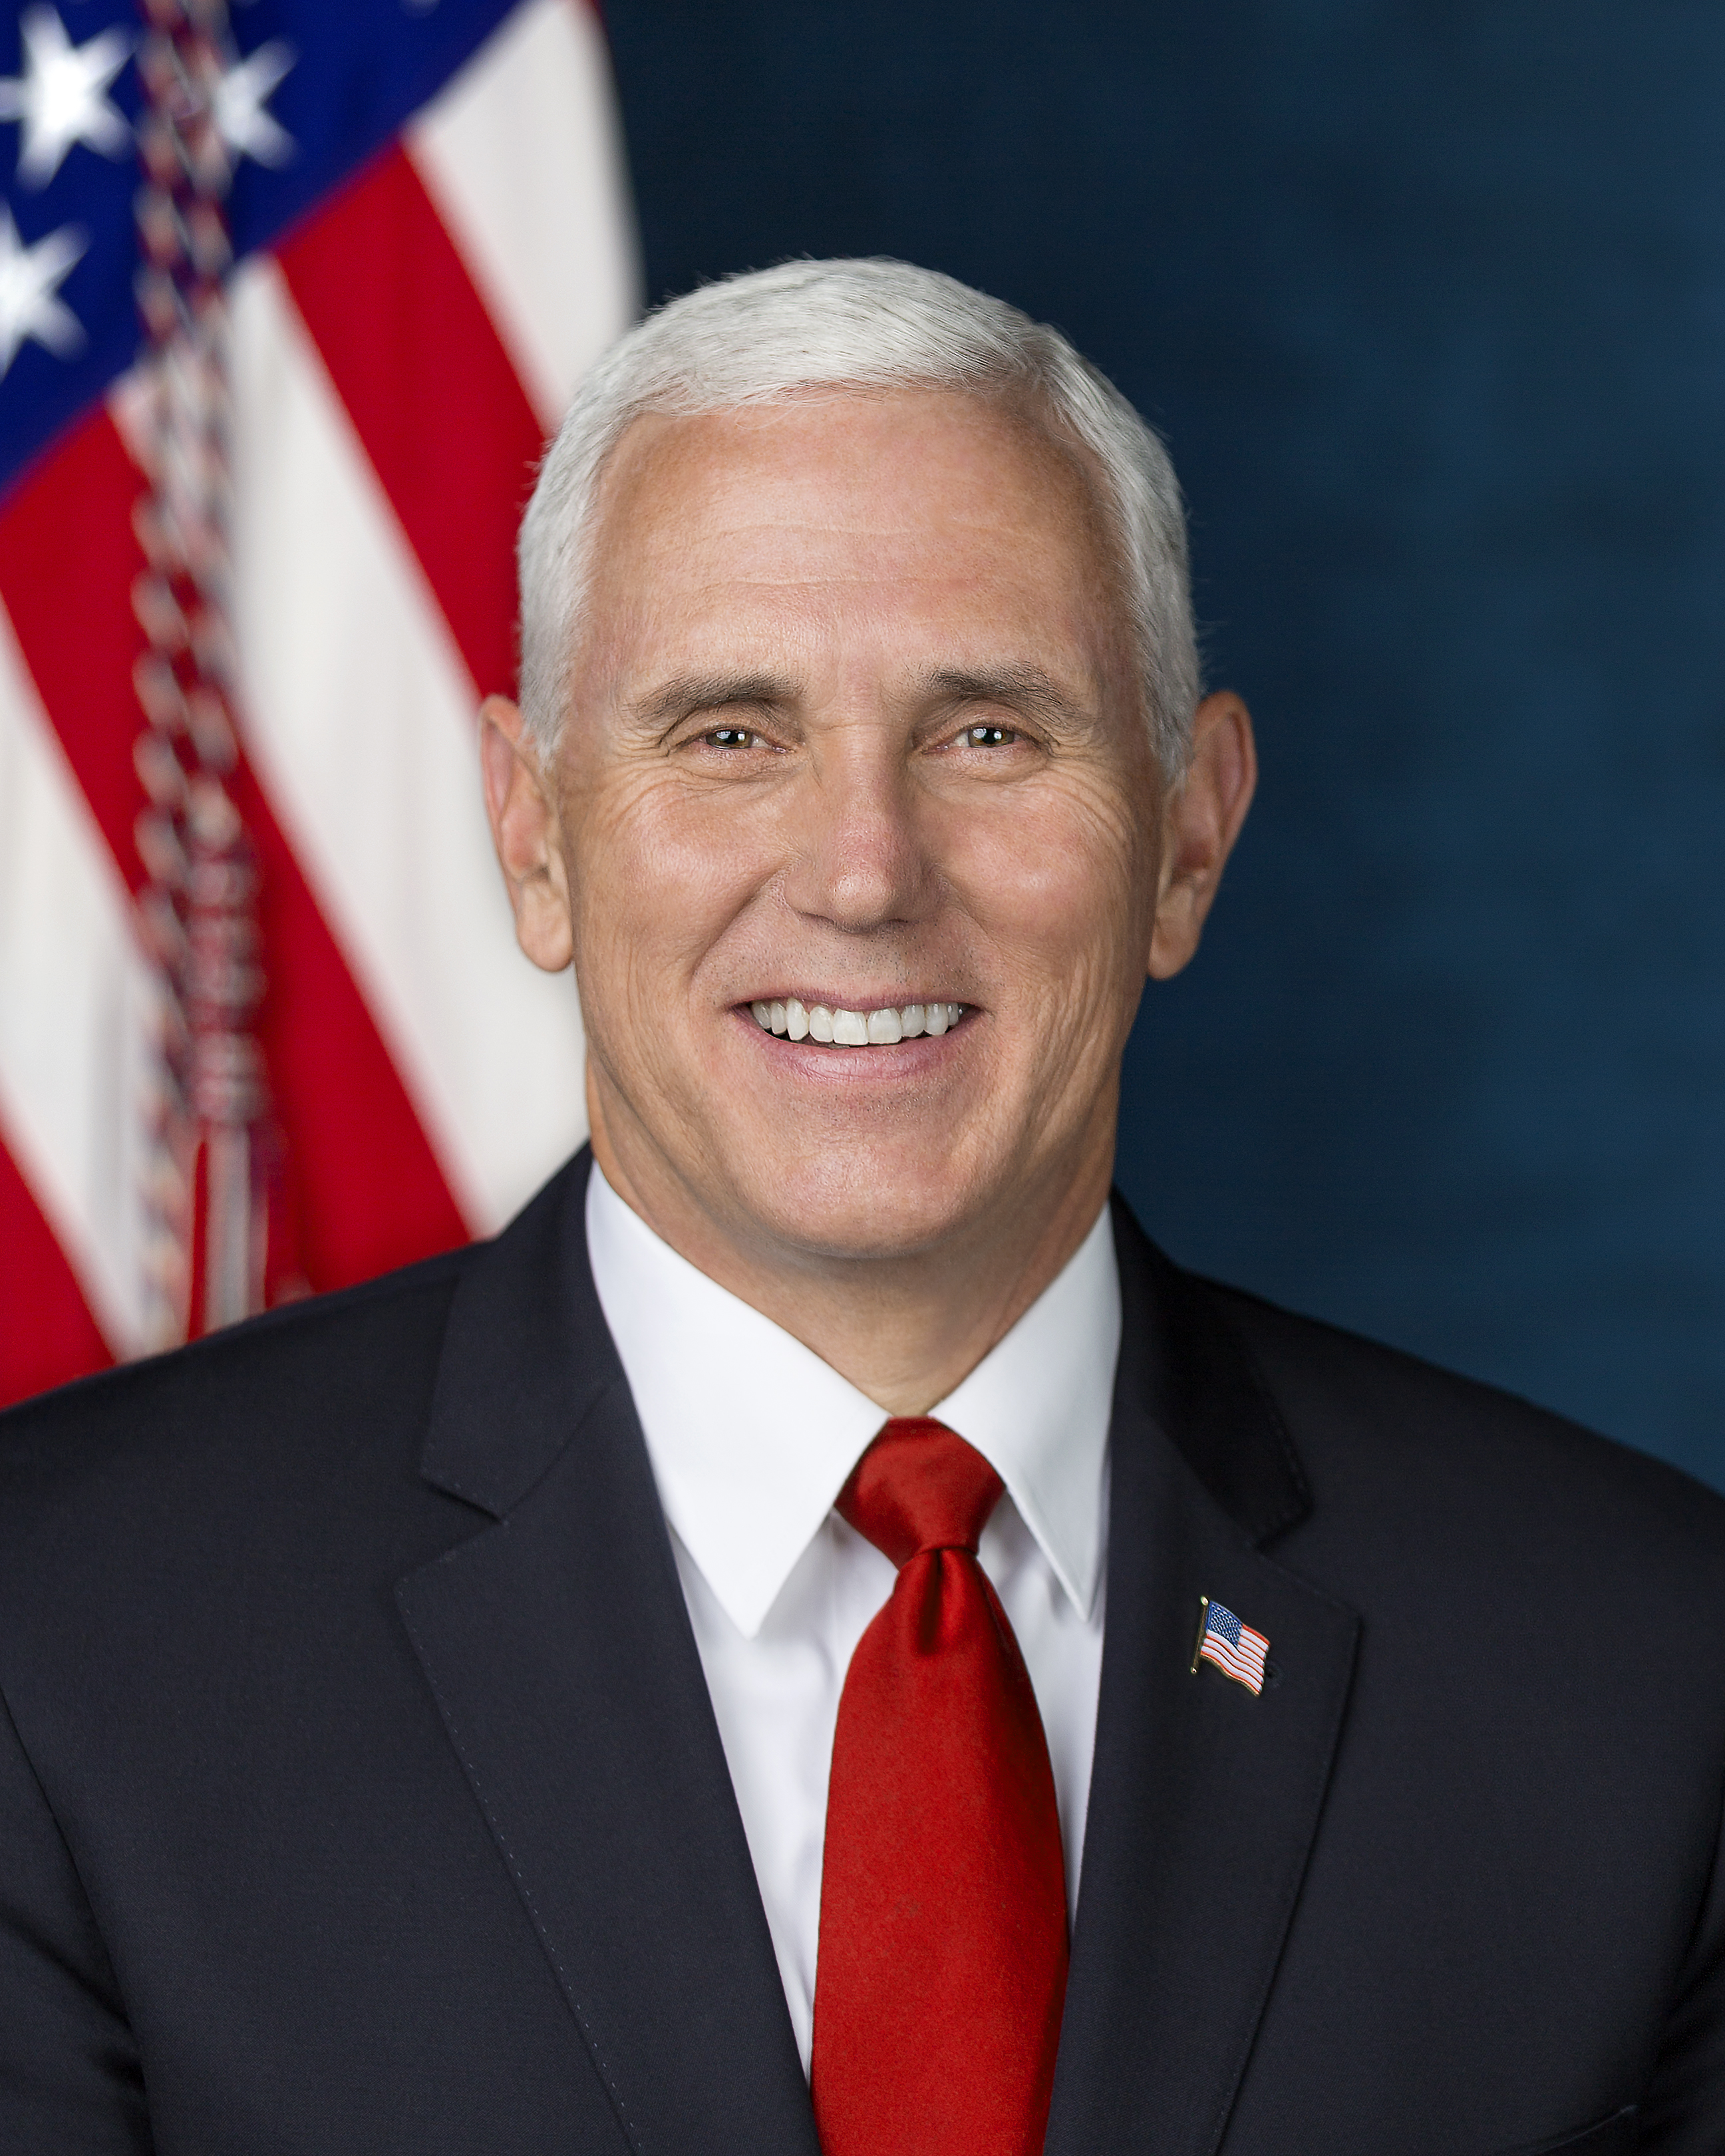 Official Portrait of Vice President Michael R. Pence